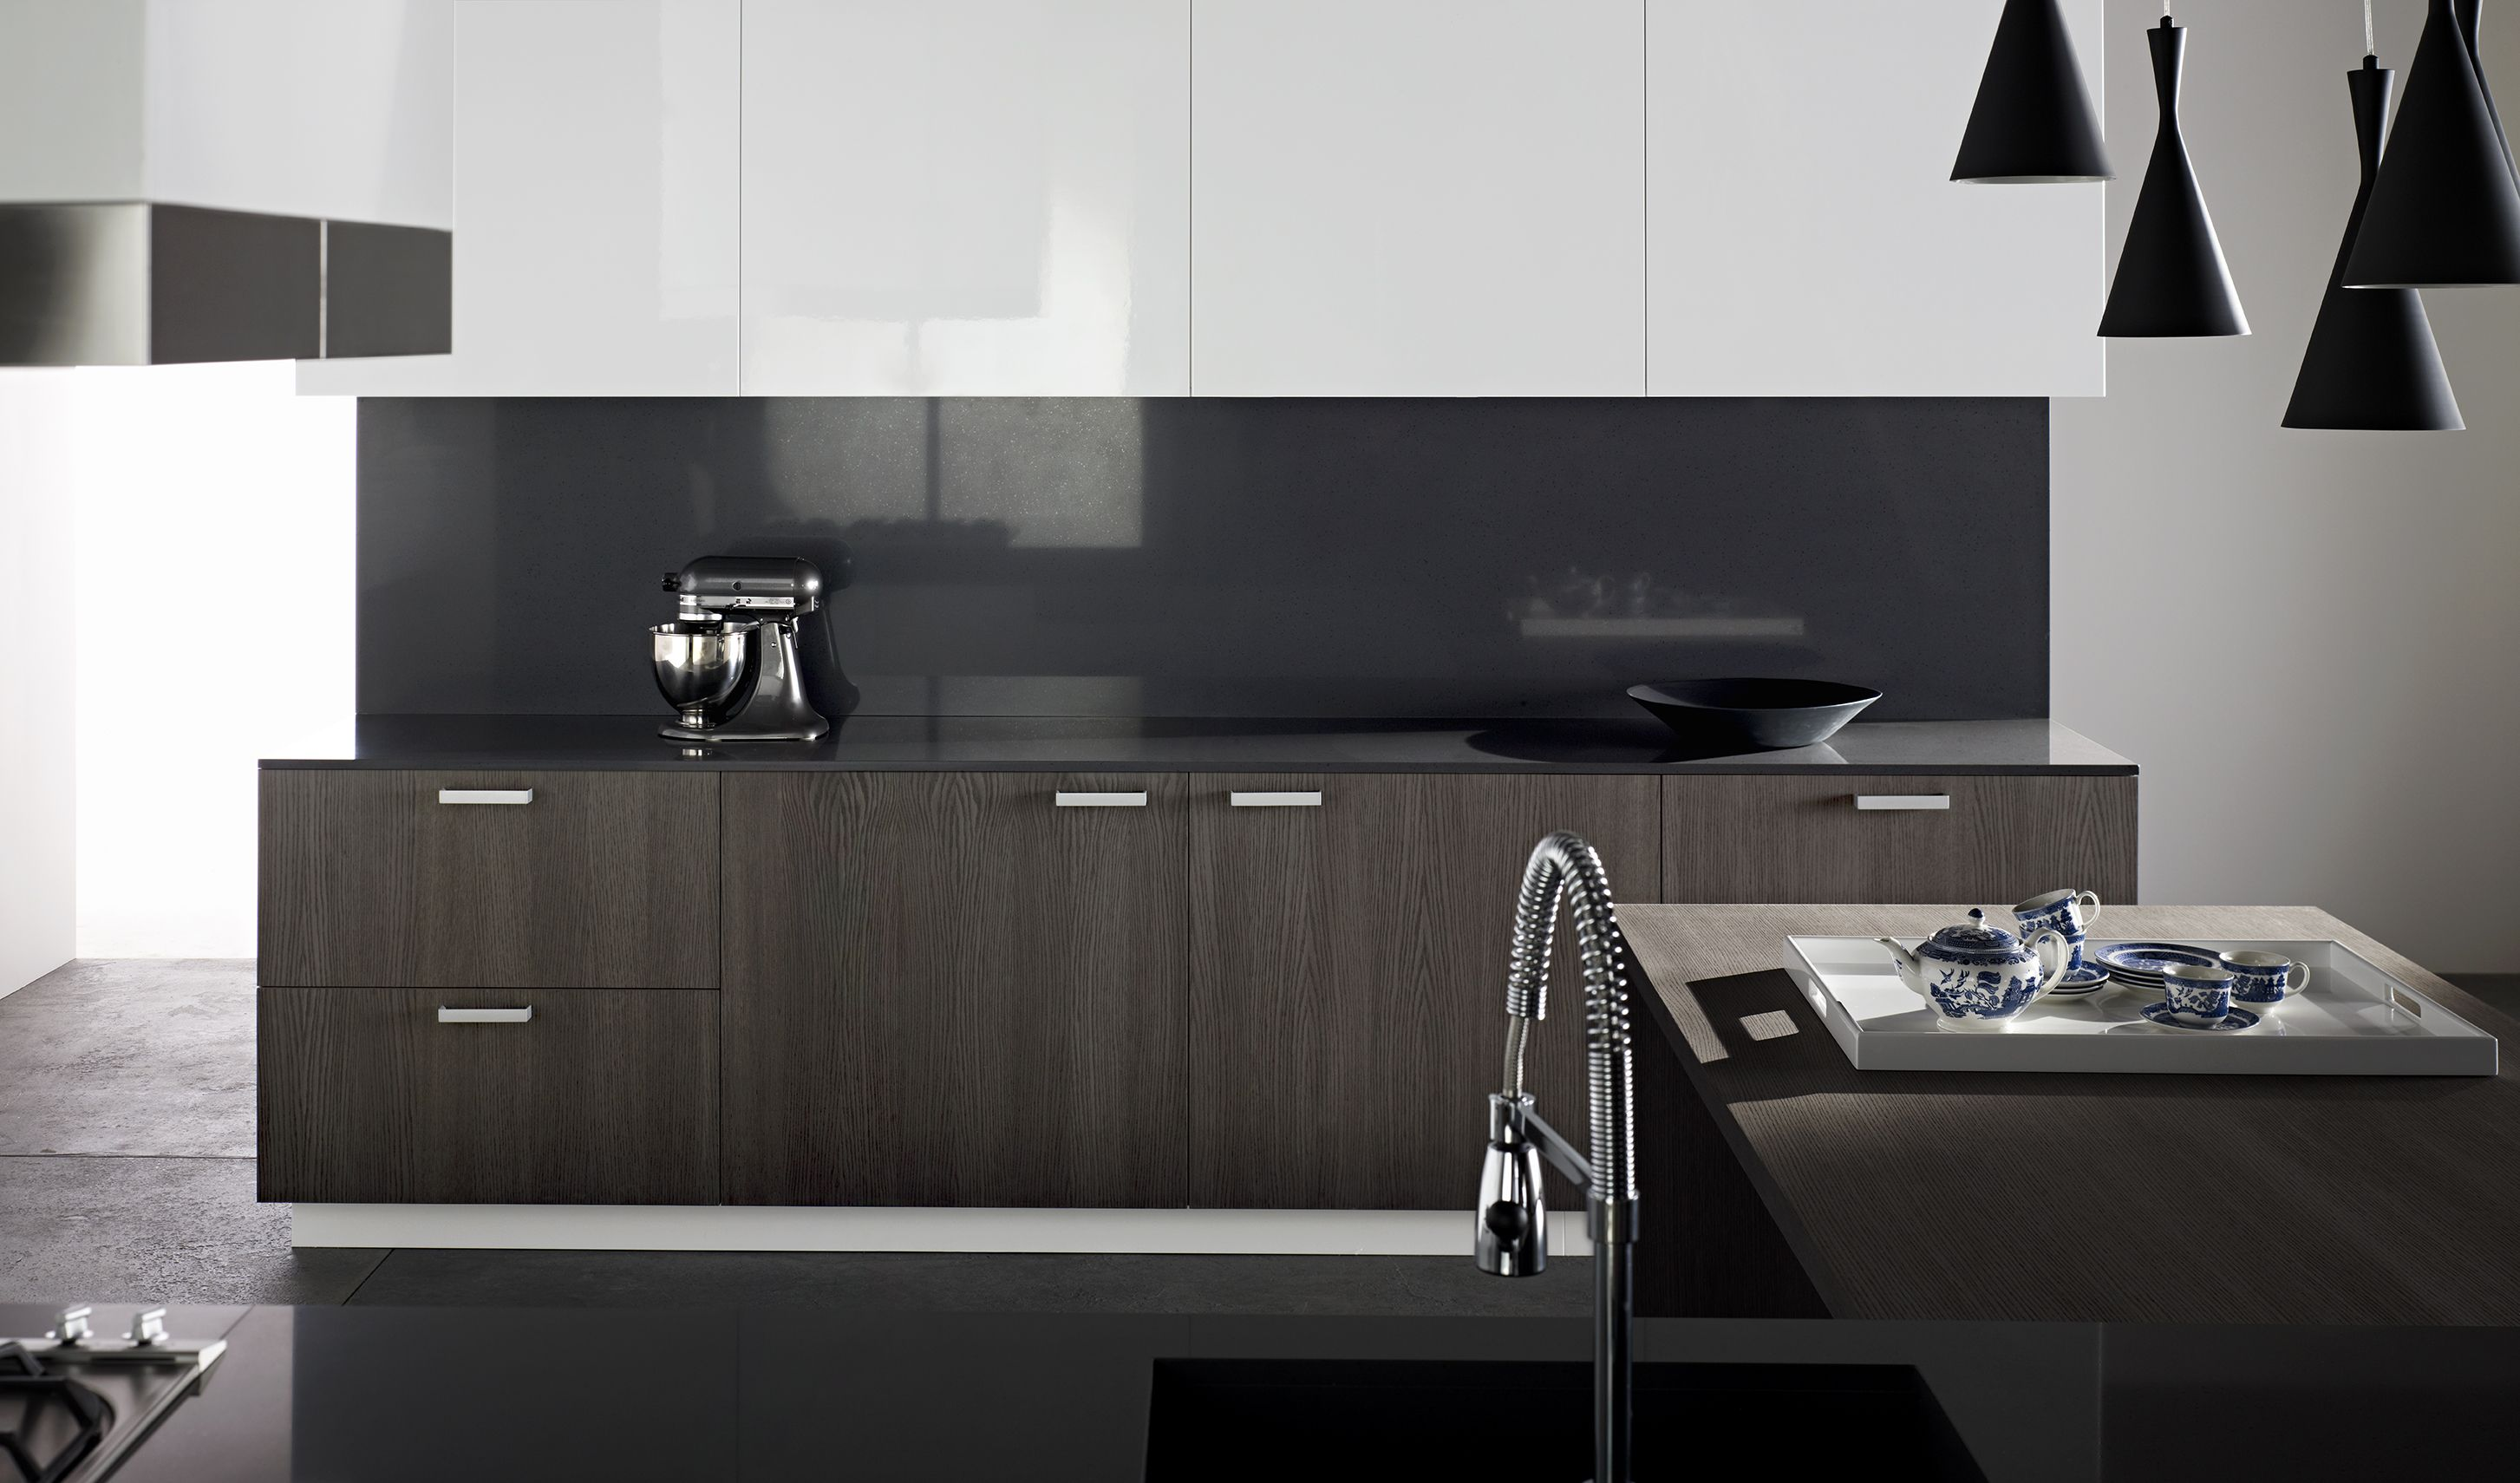 Benchtop And Splashback Essatone French Black Upper Storage Cabinets Laminex Crystalgloss